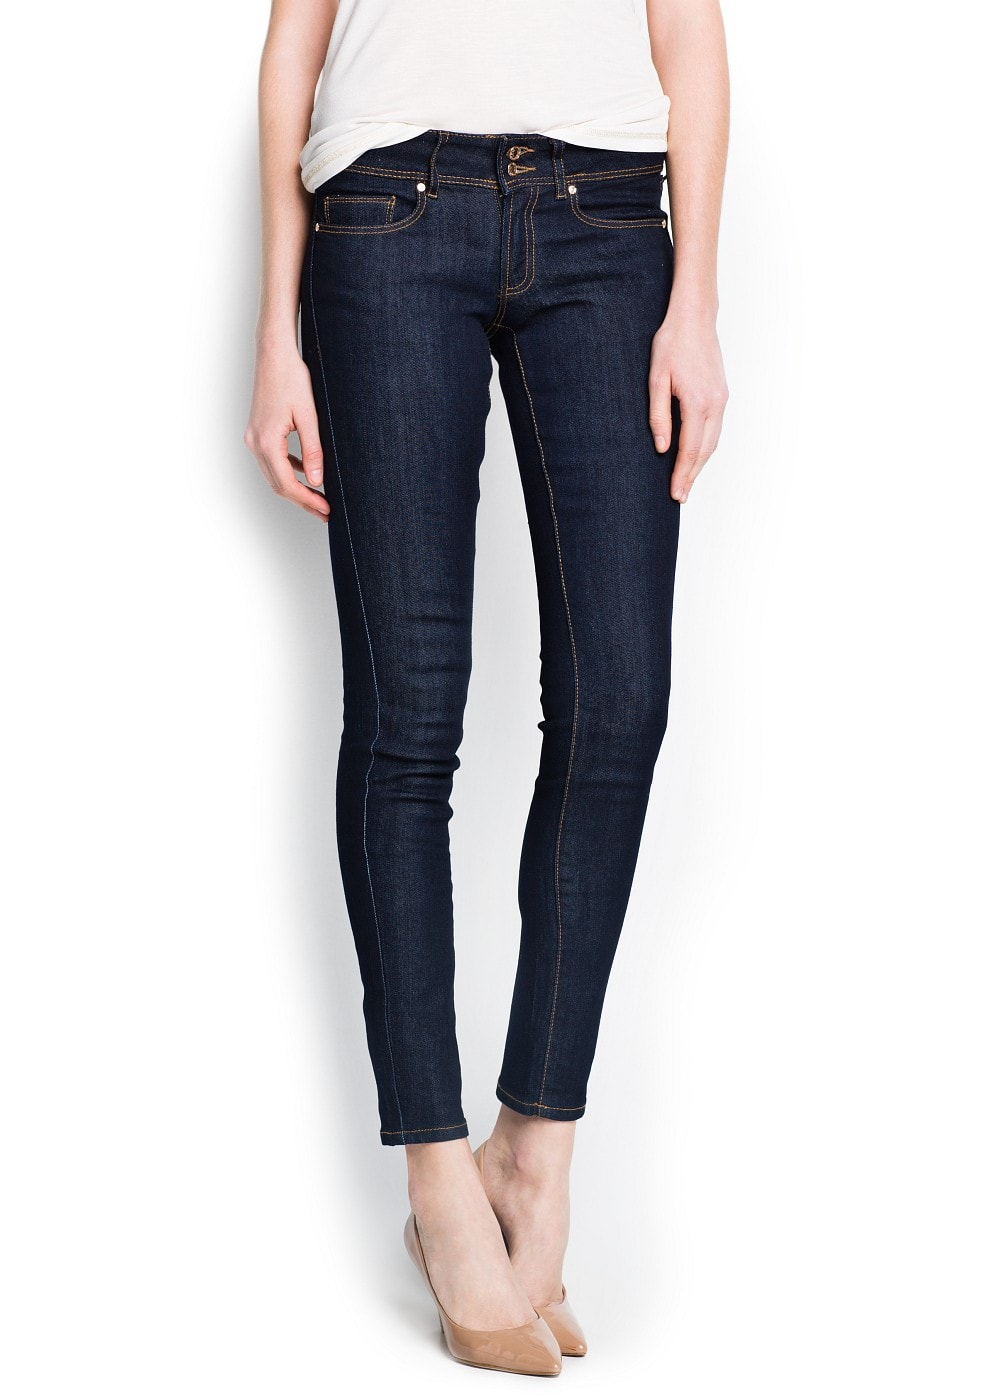 Slim-fit dark Lizzy jeans